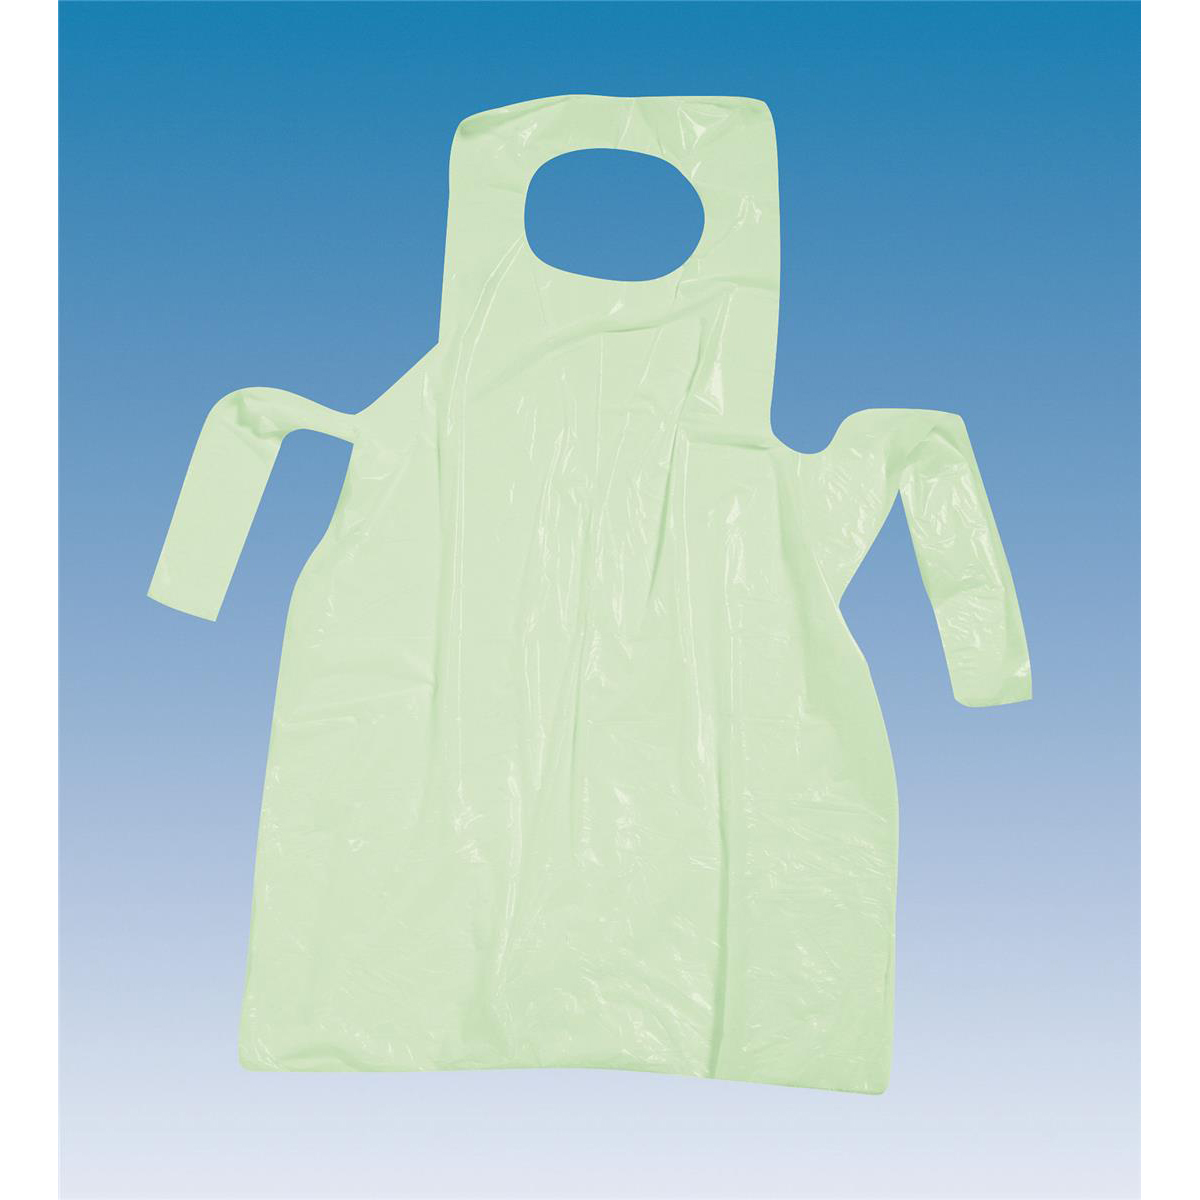 Aprons On Roll Polythene 17 Micron 27x46in Green [Roll of 200]